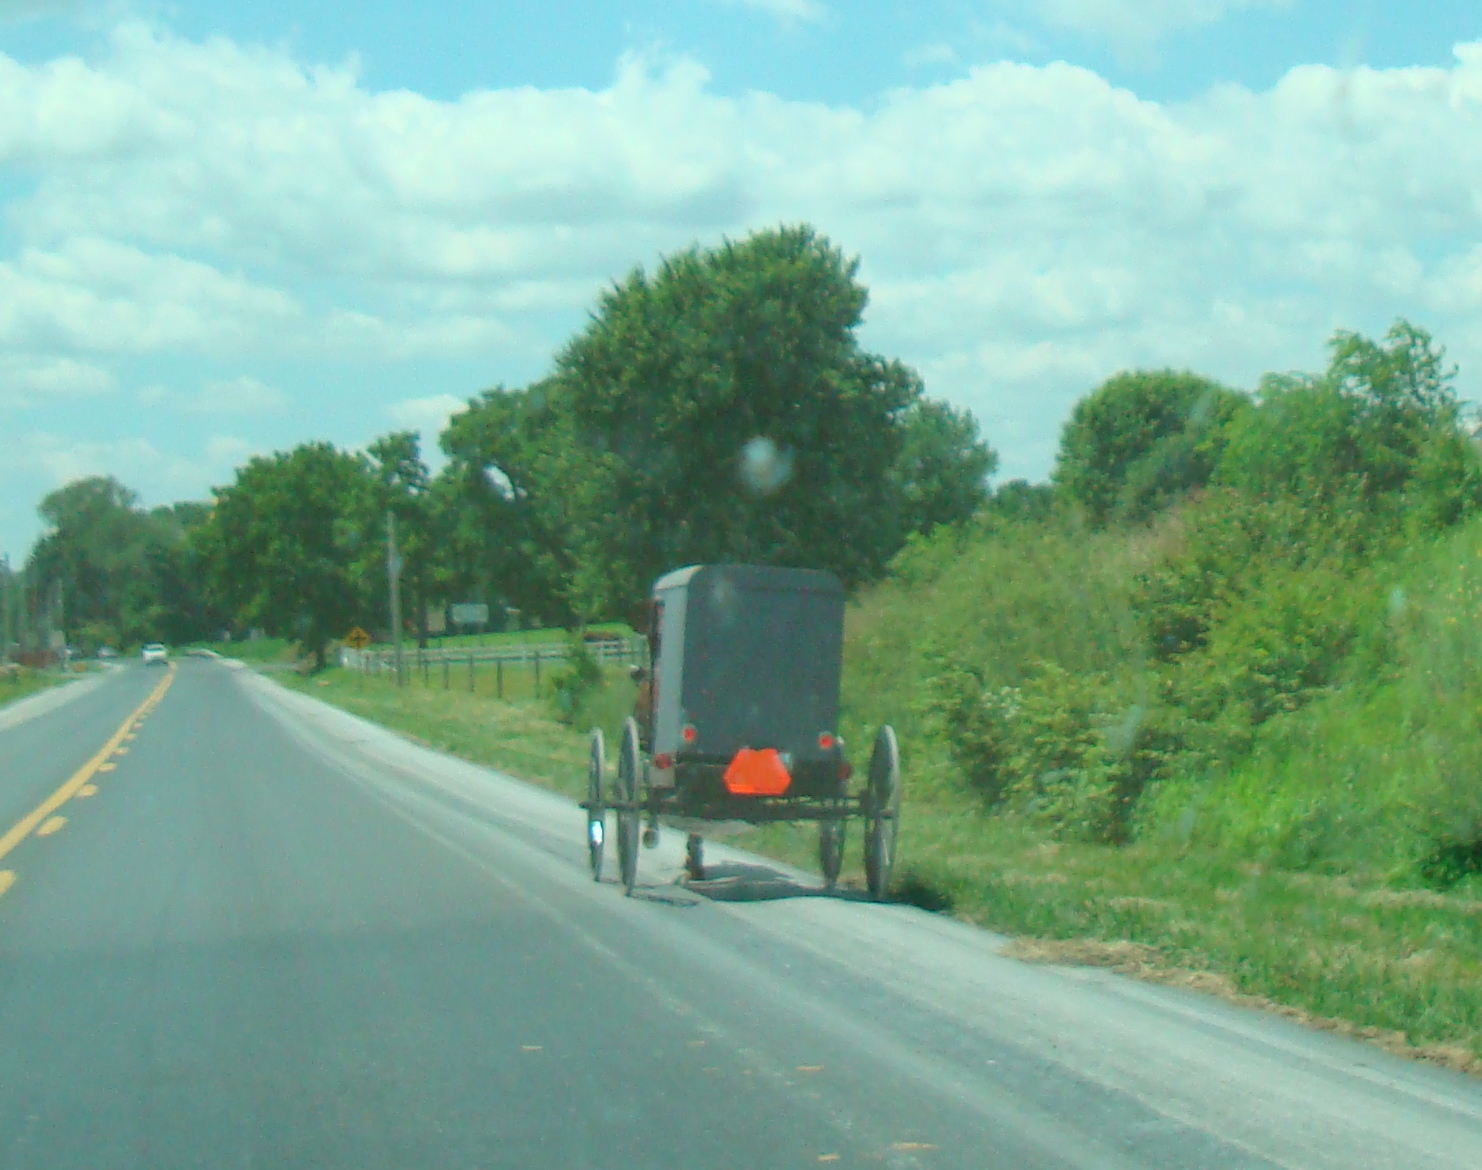 File:Old Order Amish horse and buggy in Intercourse, PA 2 crop.jpg